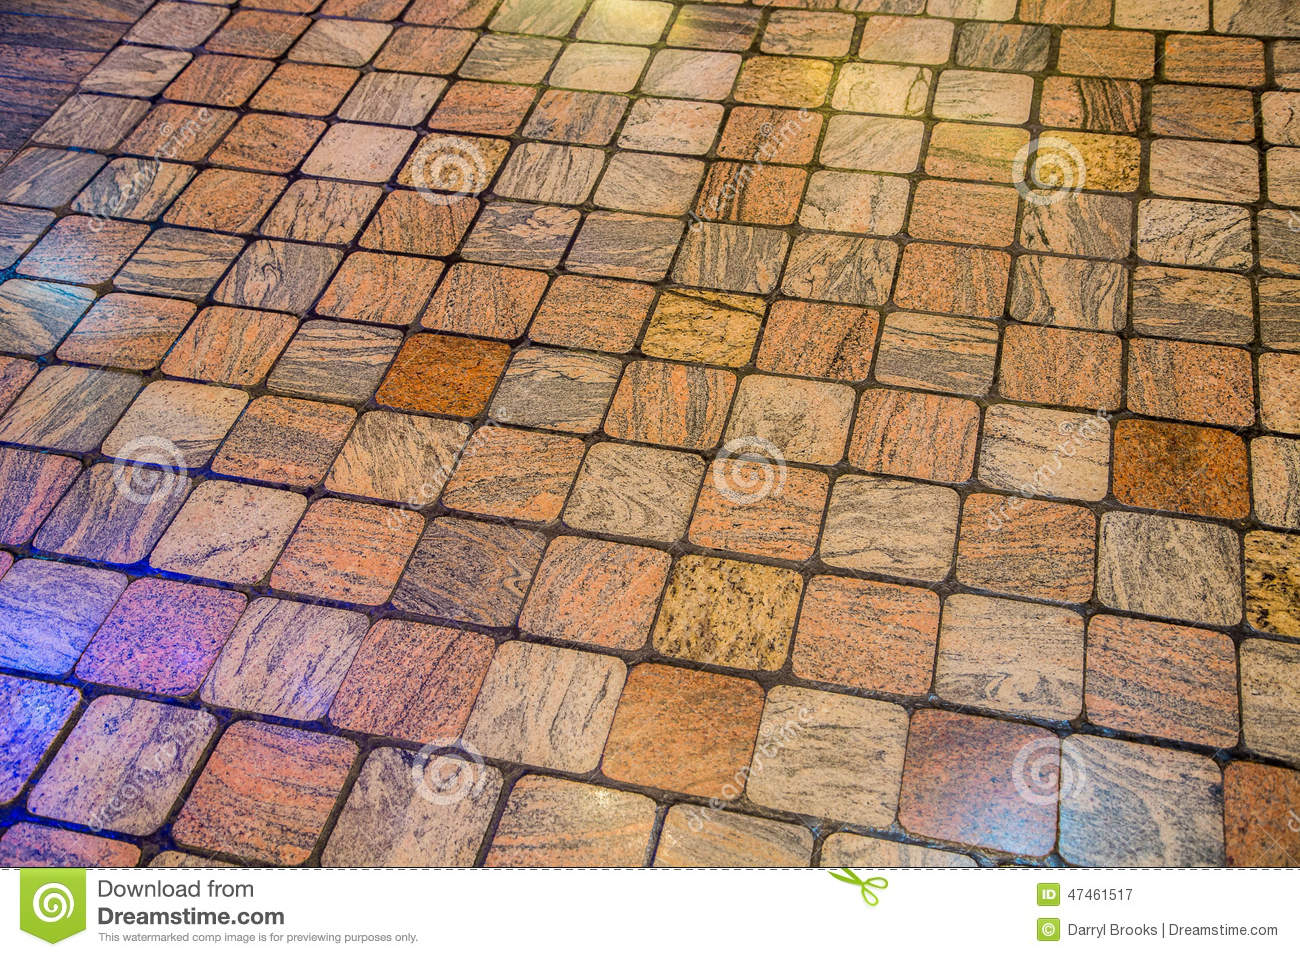 Stone Tile Floor Background Stock Image - Image of natural, tile ...